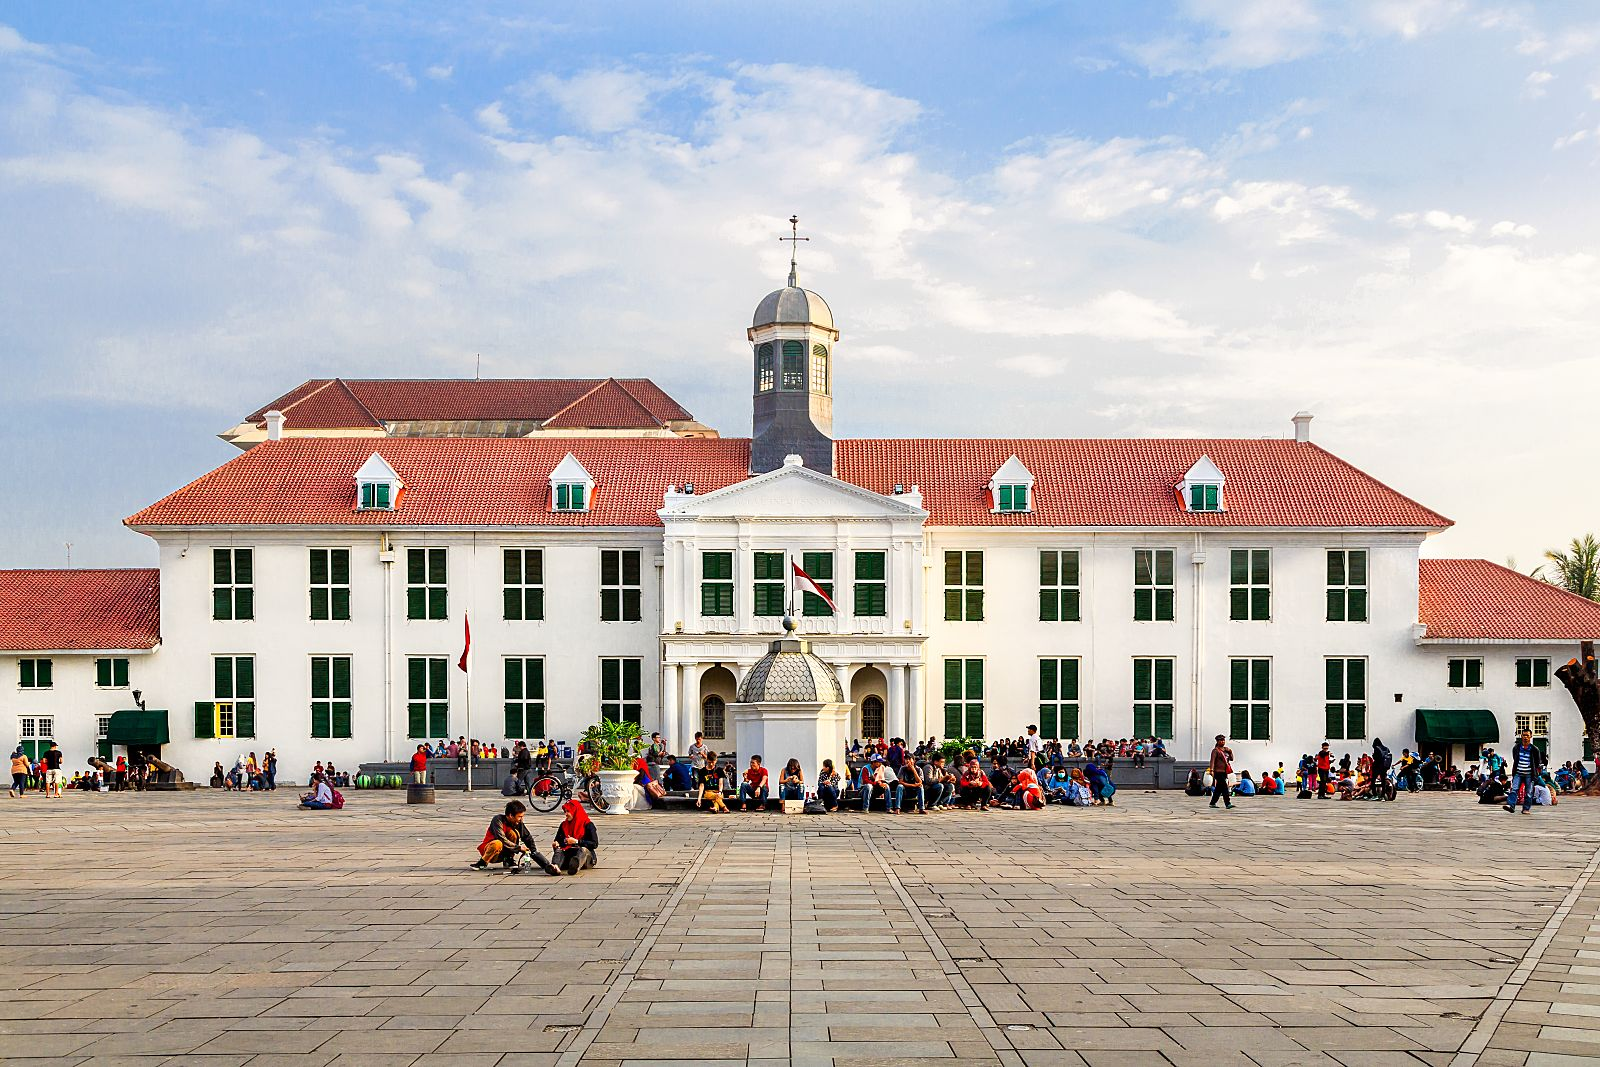 A Day in Kota Tua by @lemi in Jakarta, Indonesia | Lemi - (re)discover your  city